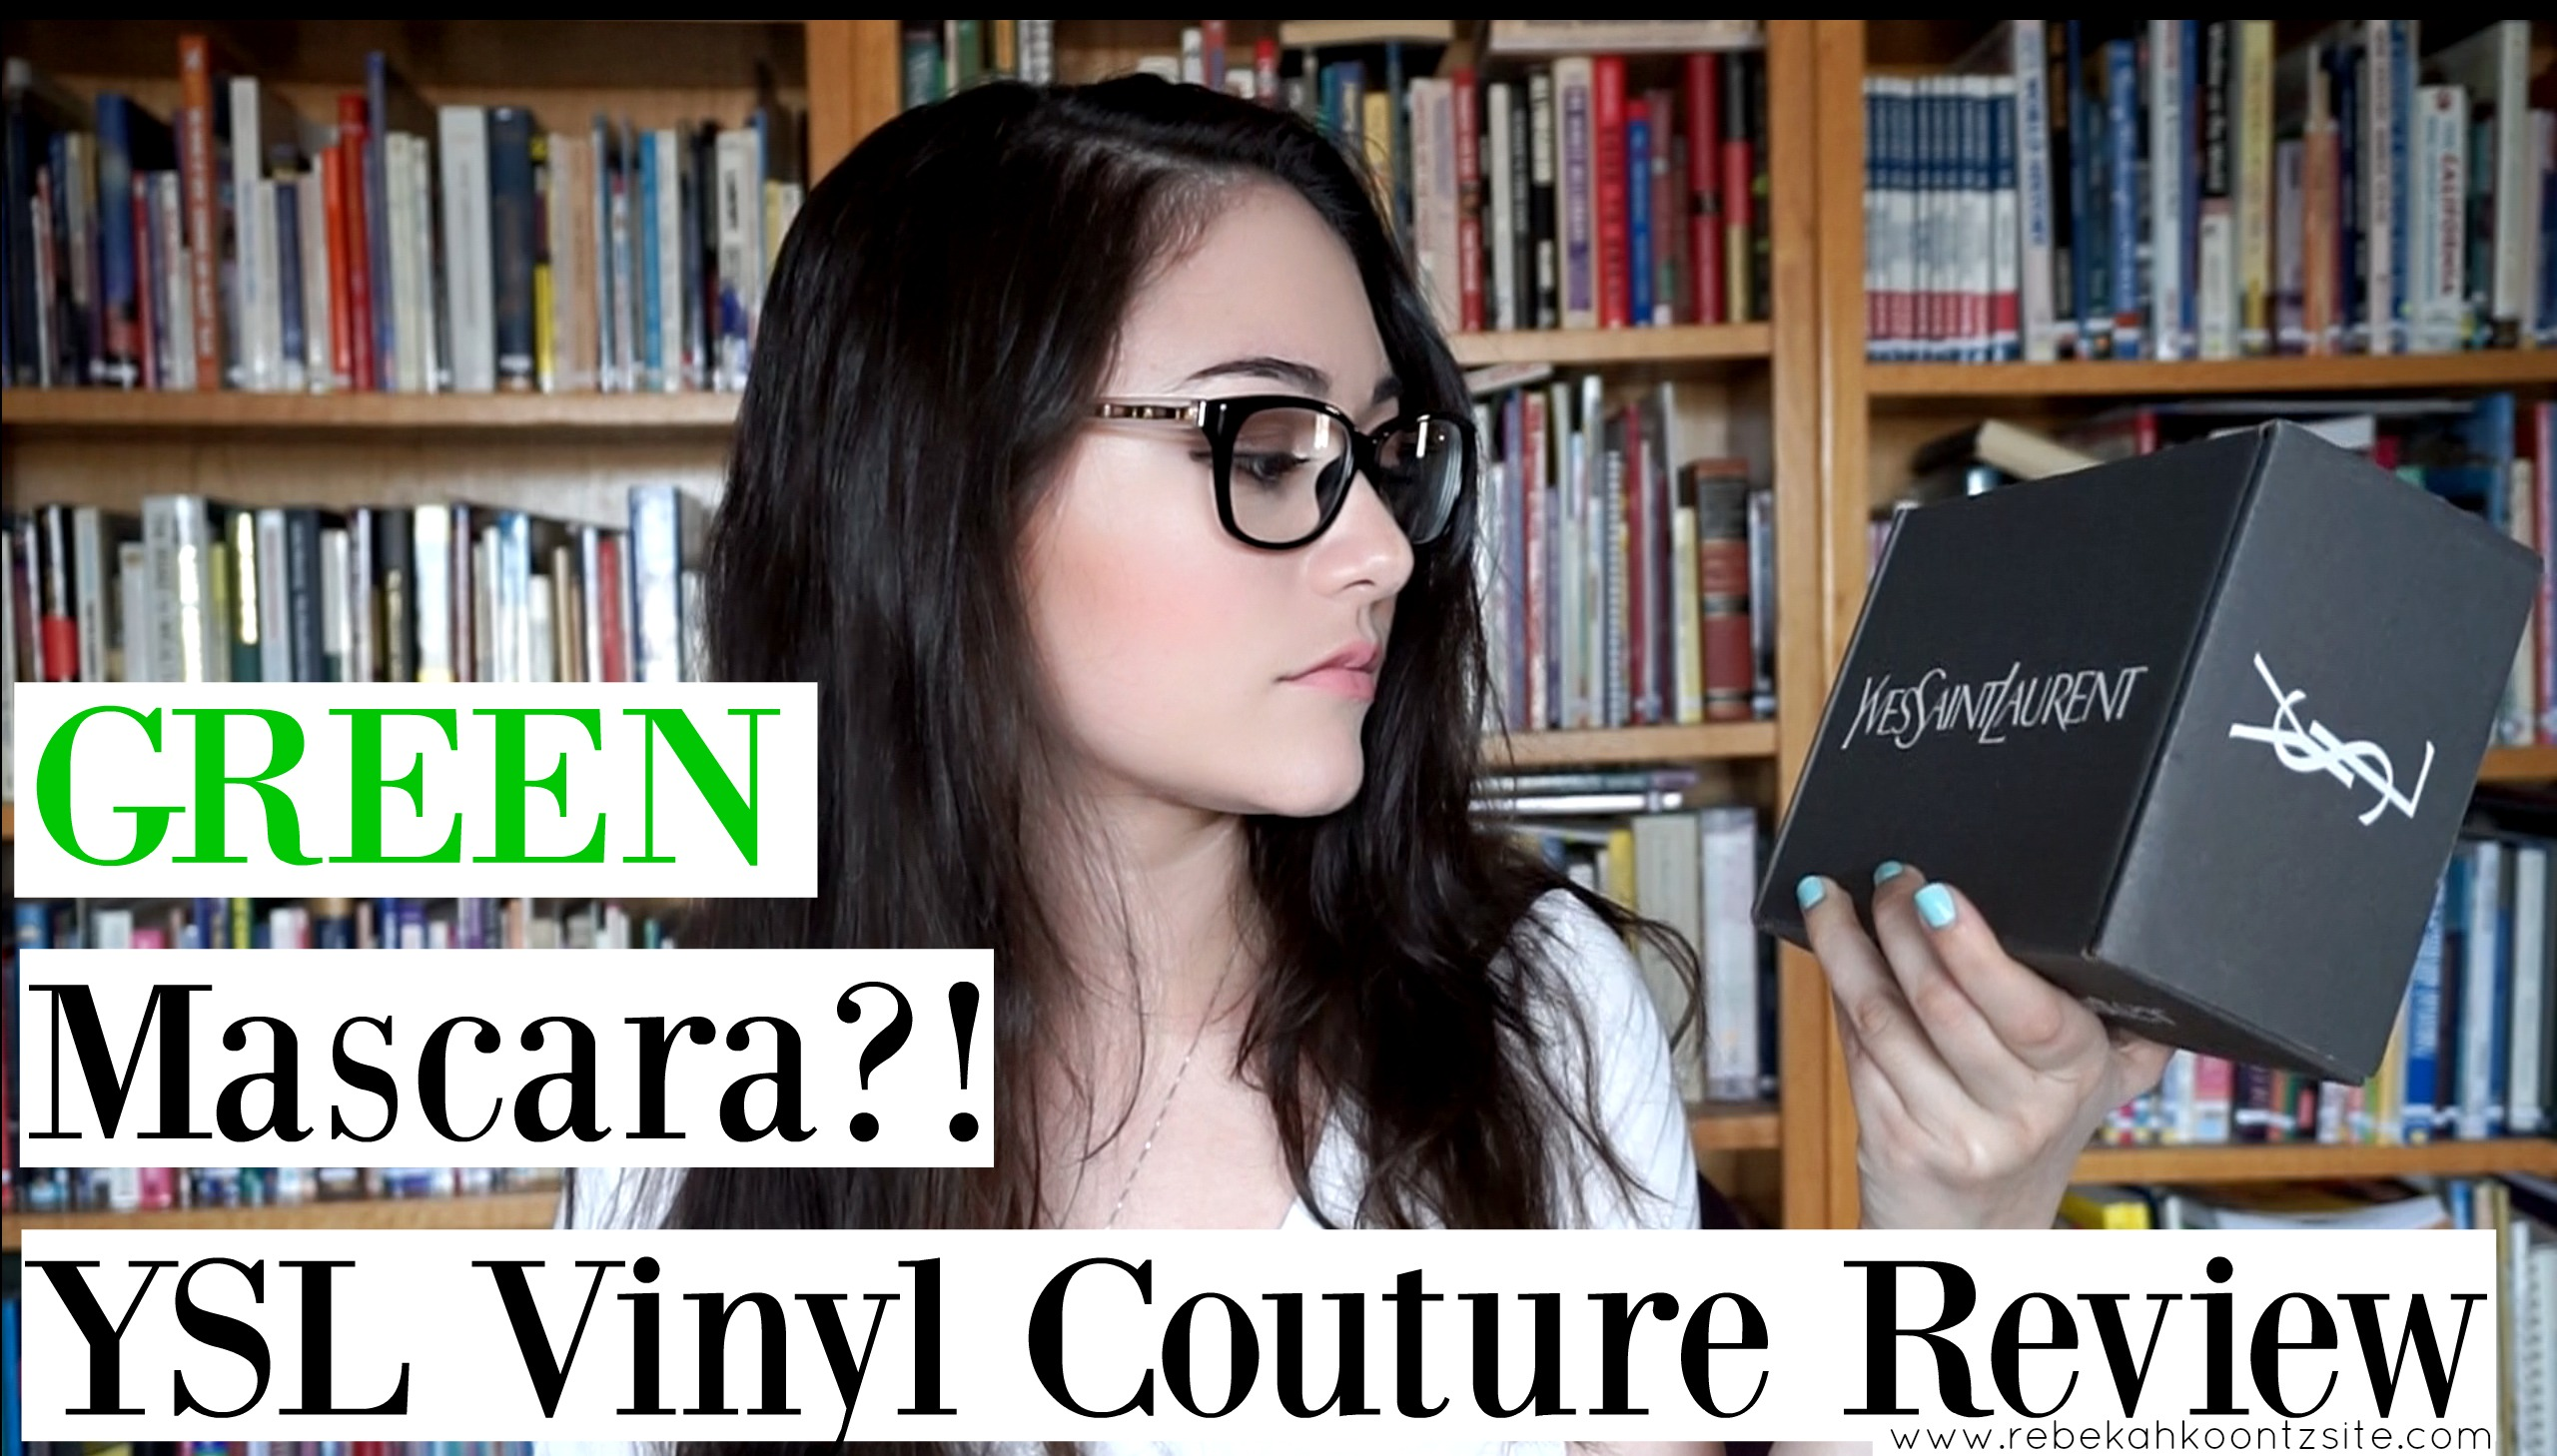 Green mascara YSL Vinyl Couture review youtube video makeup